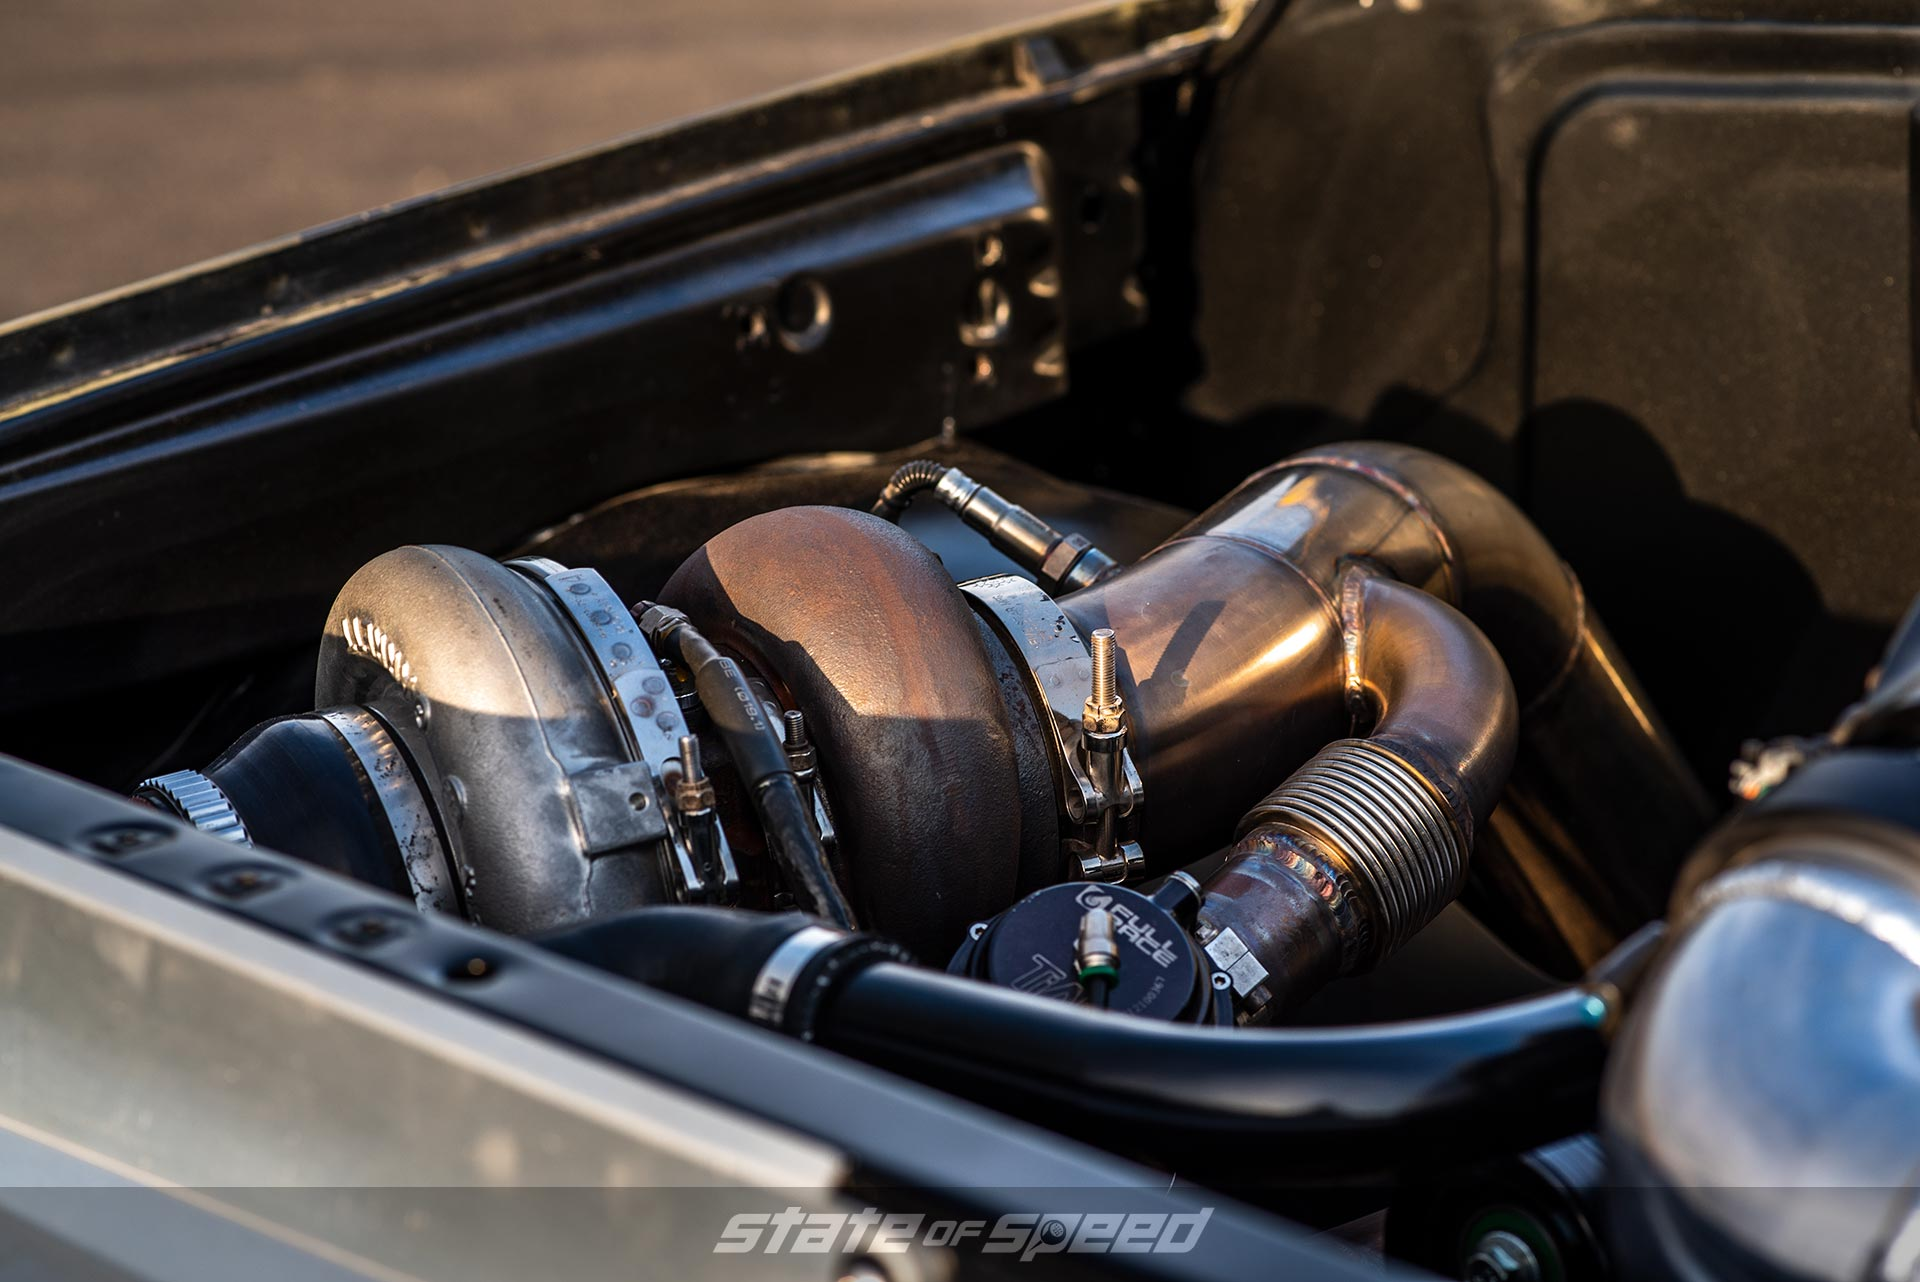 Another turbocharger